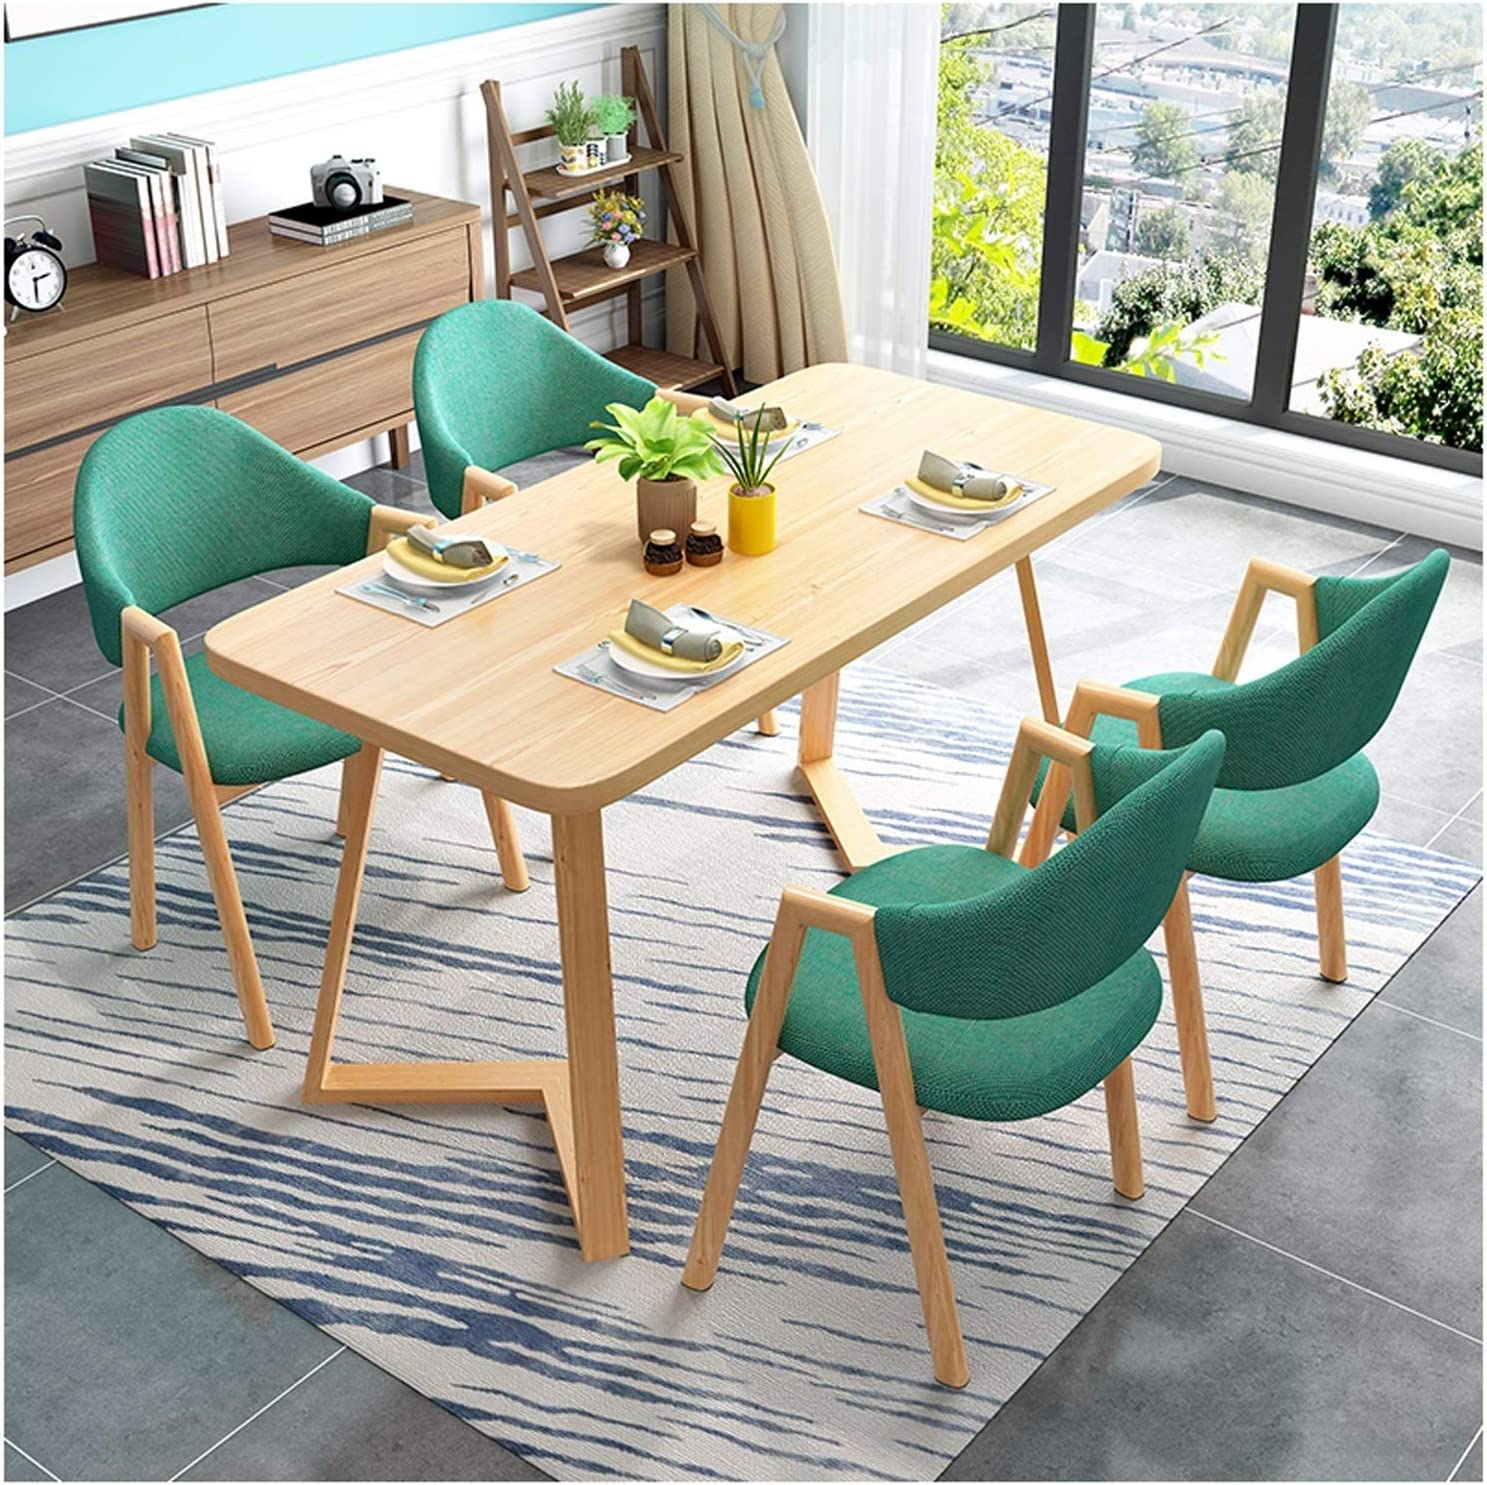 BDBT Modern Denver Mall Living Room Table and Simple Round Chair Set L Denver Mall